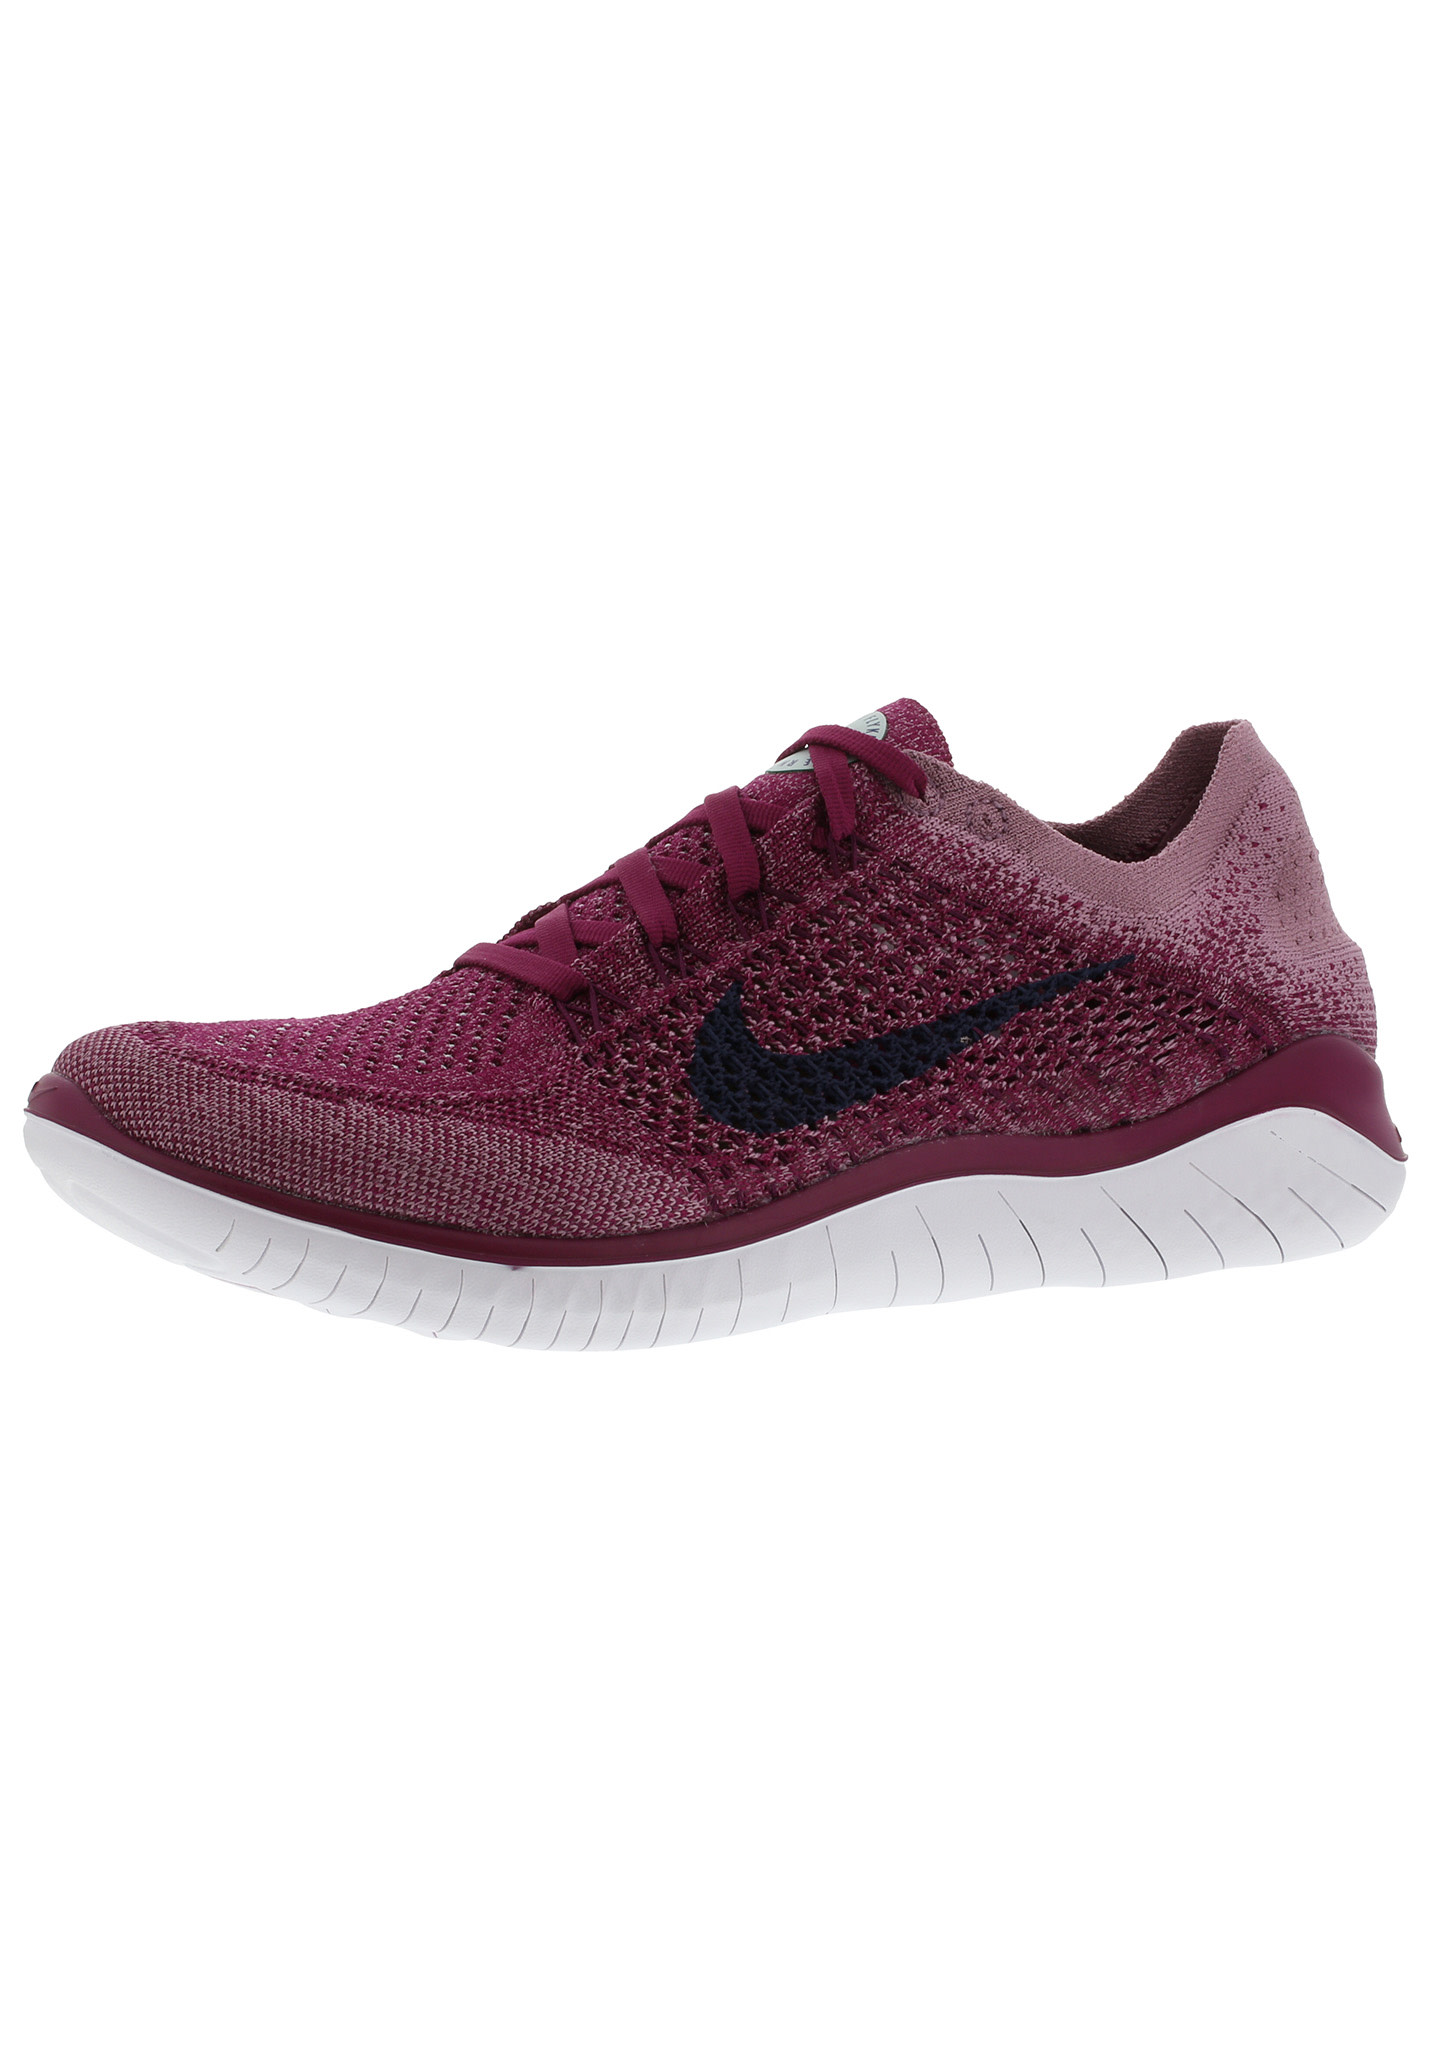 796b6bf4ae607b Nike Free RN Flyknit 2018 - Running shoes for Women - Pink